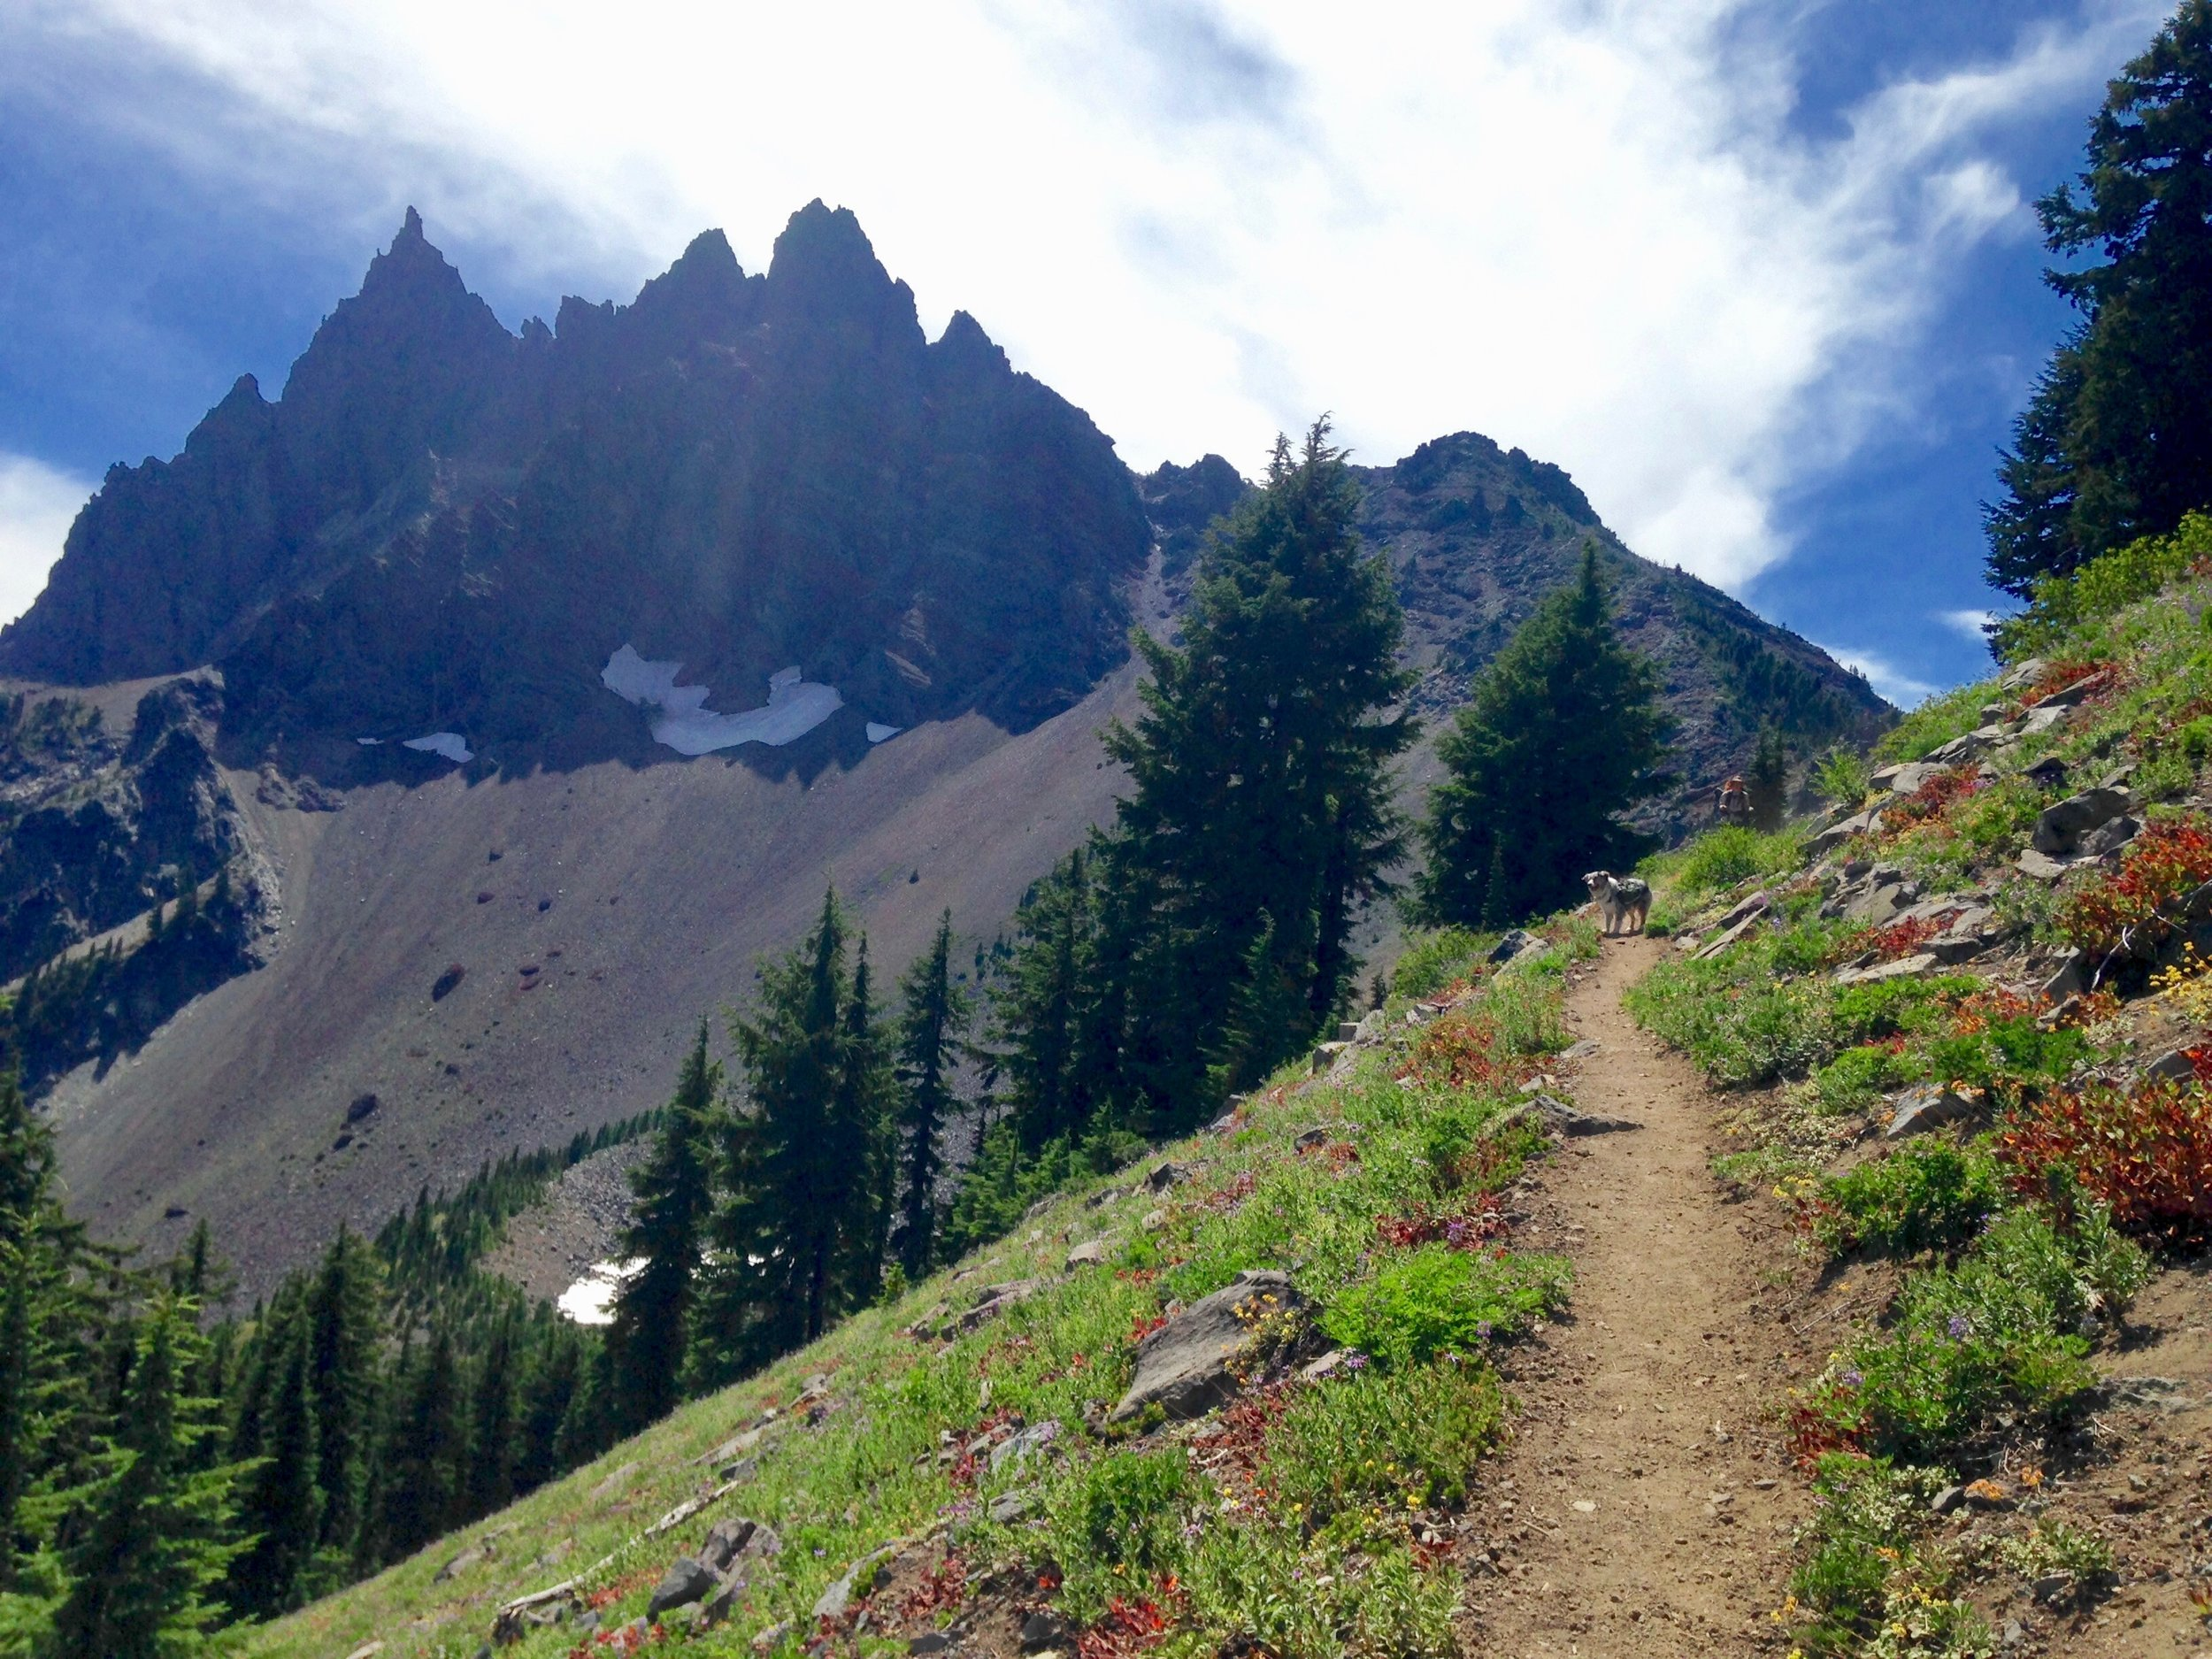 Three Fingered Jack - Deschutes National Forest, OR